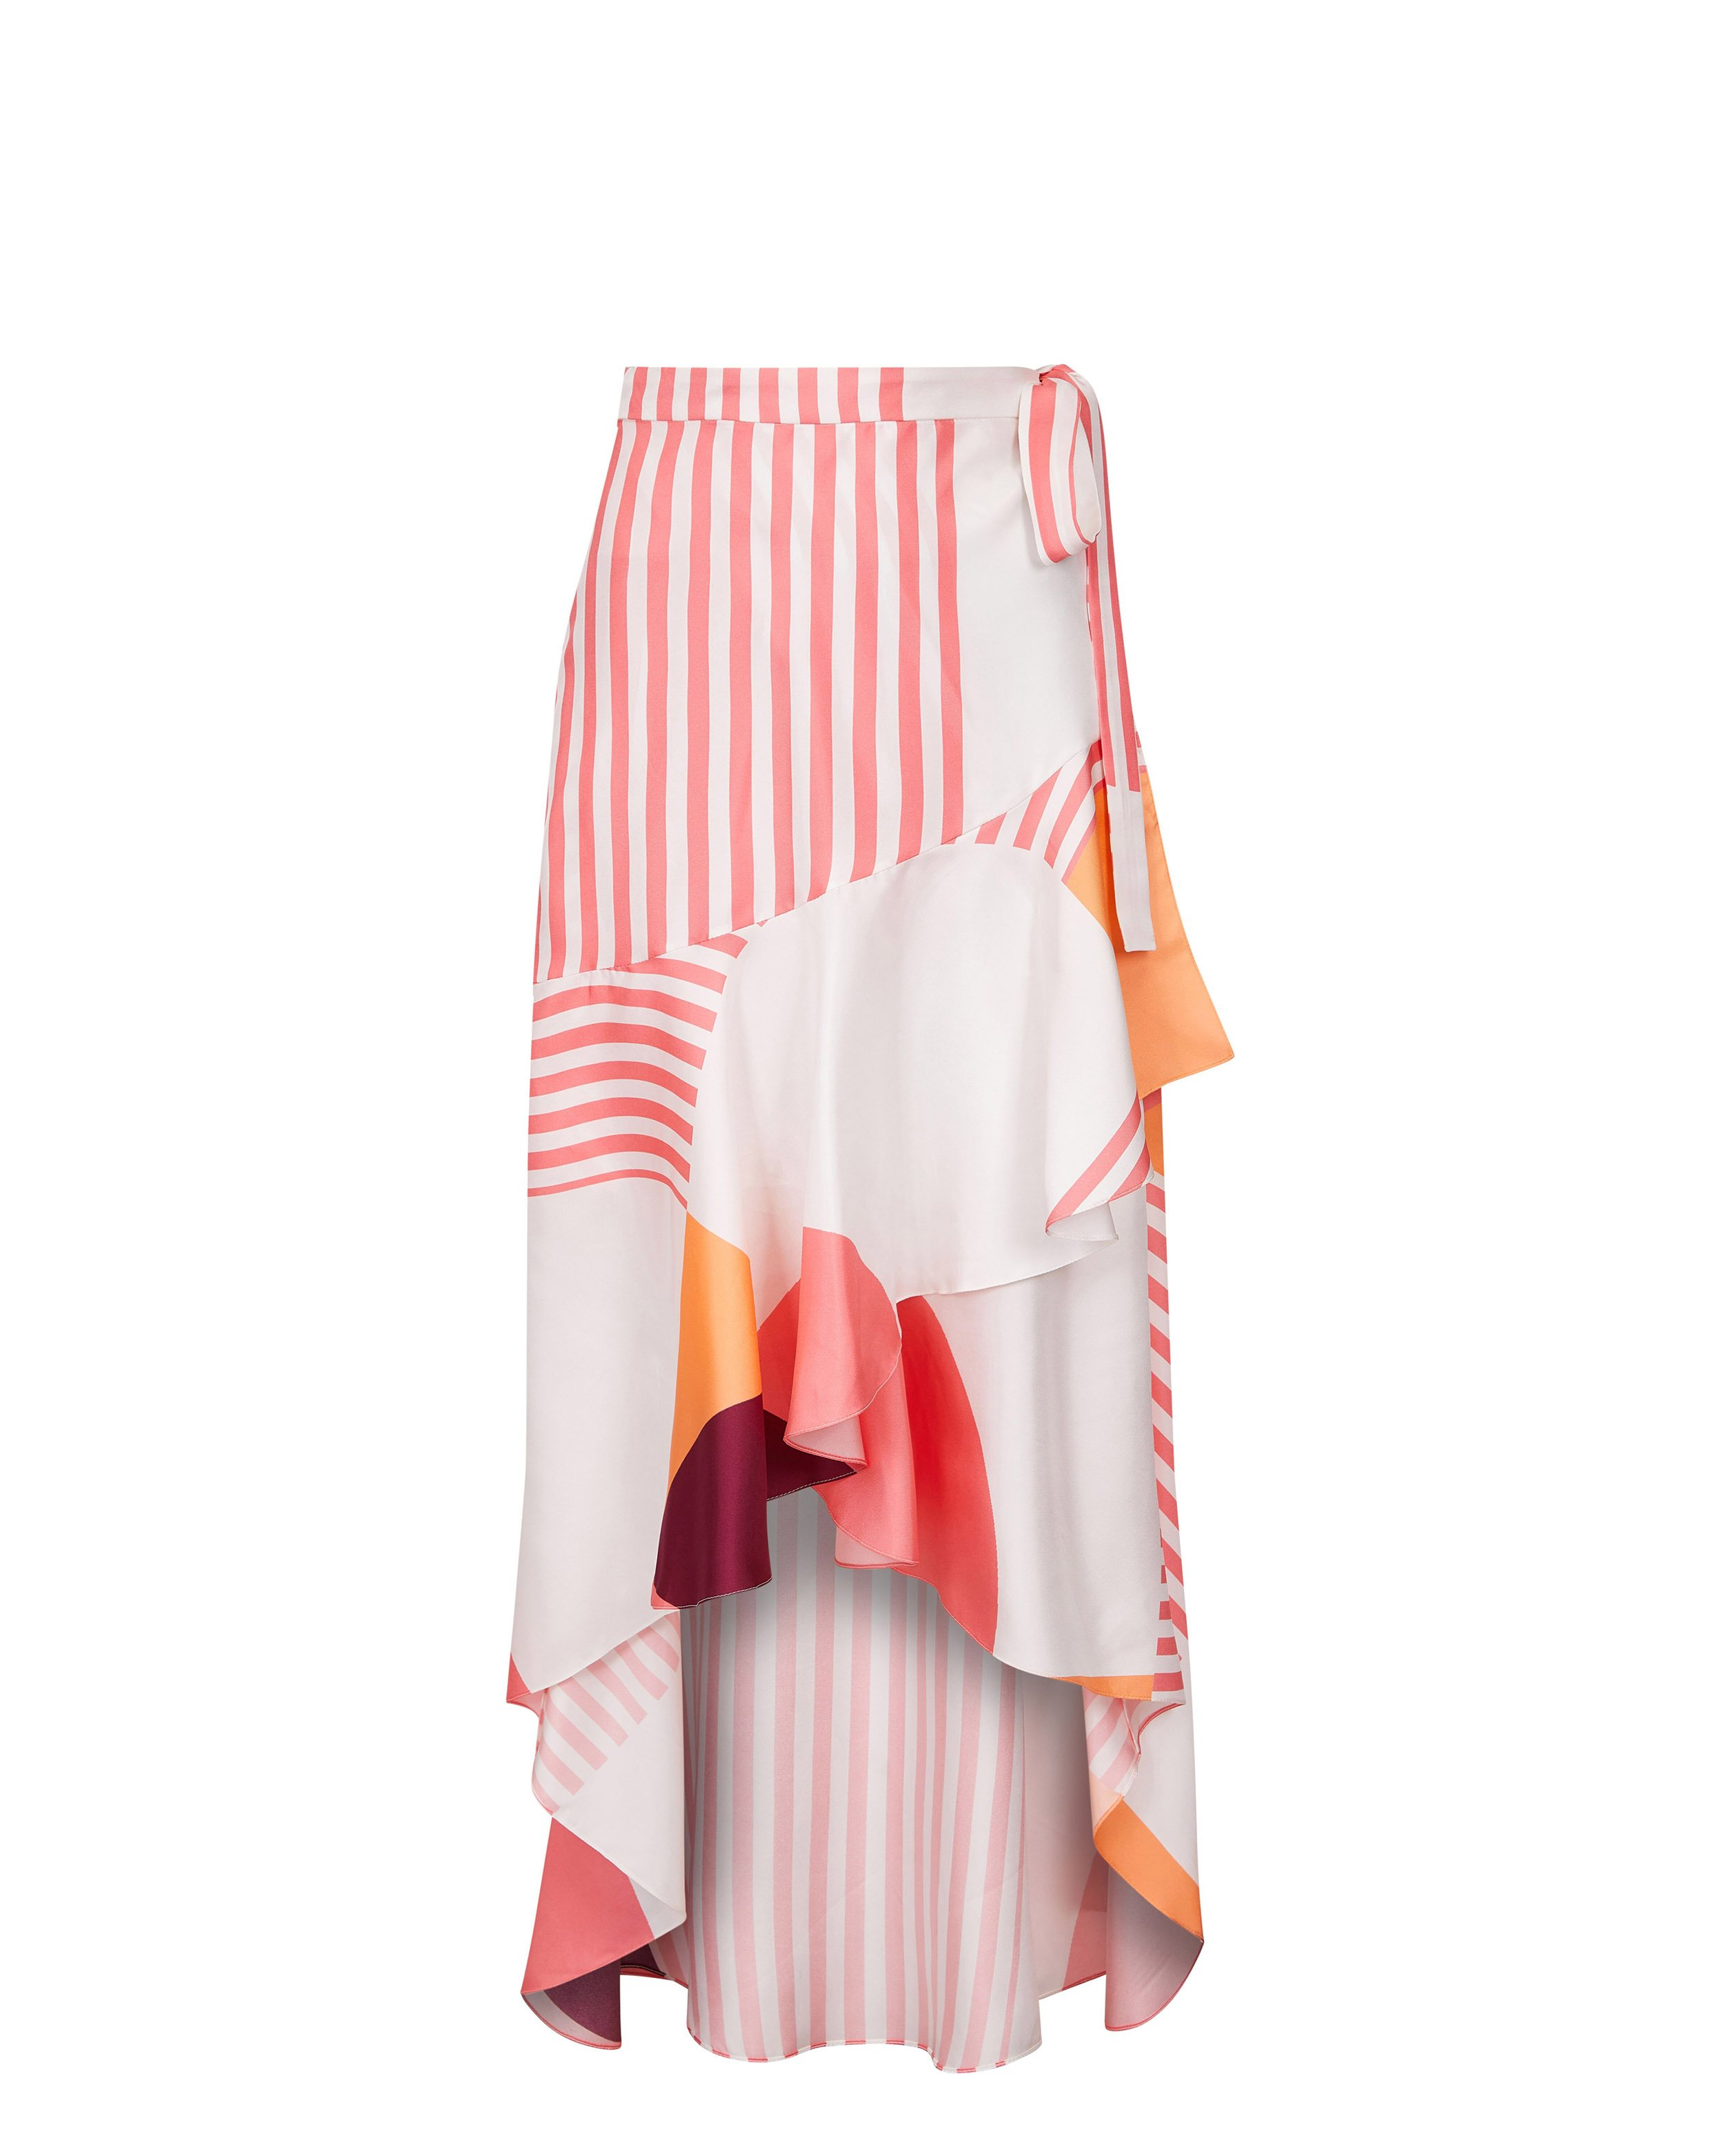 Sienna Skirt by PAPER London on curated-crowd.com